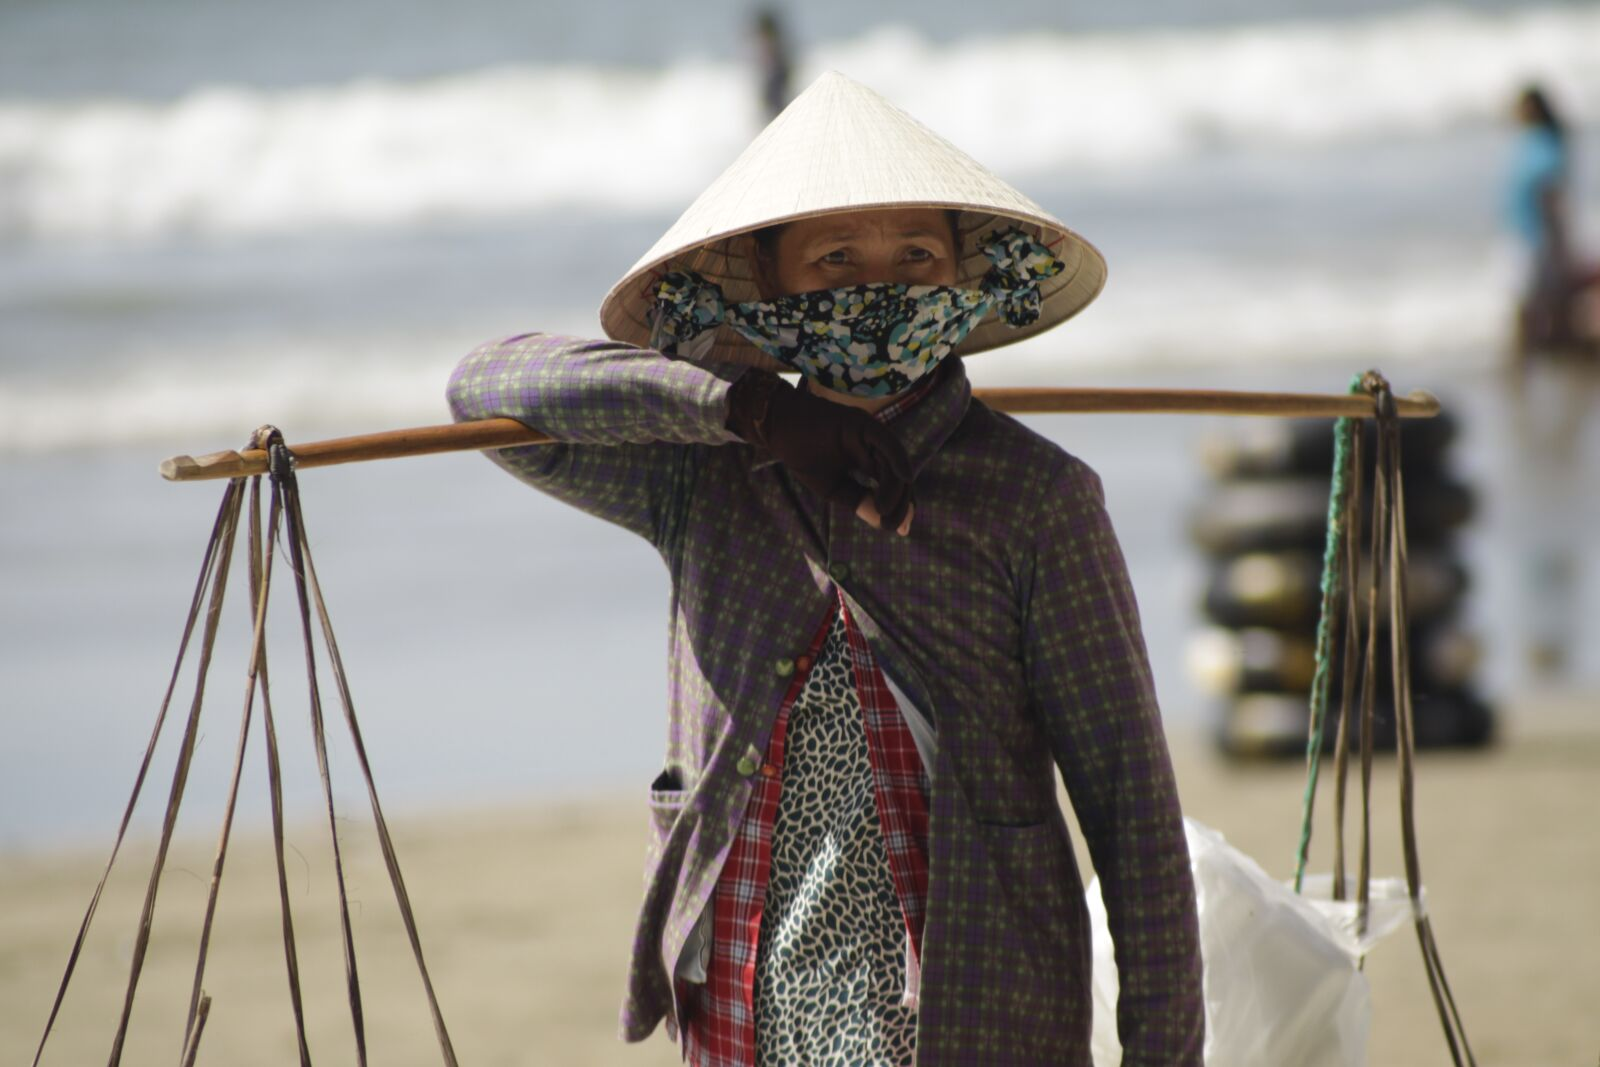 """Canon EOS 50D sample photo. """"Hat, seaside, badger"""" photography"""